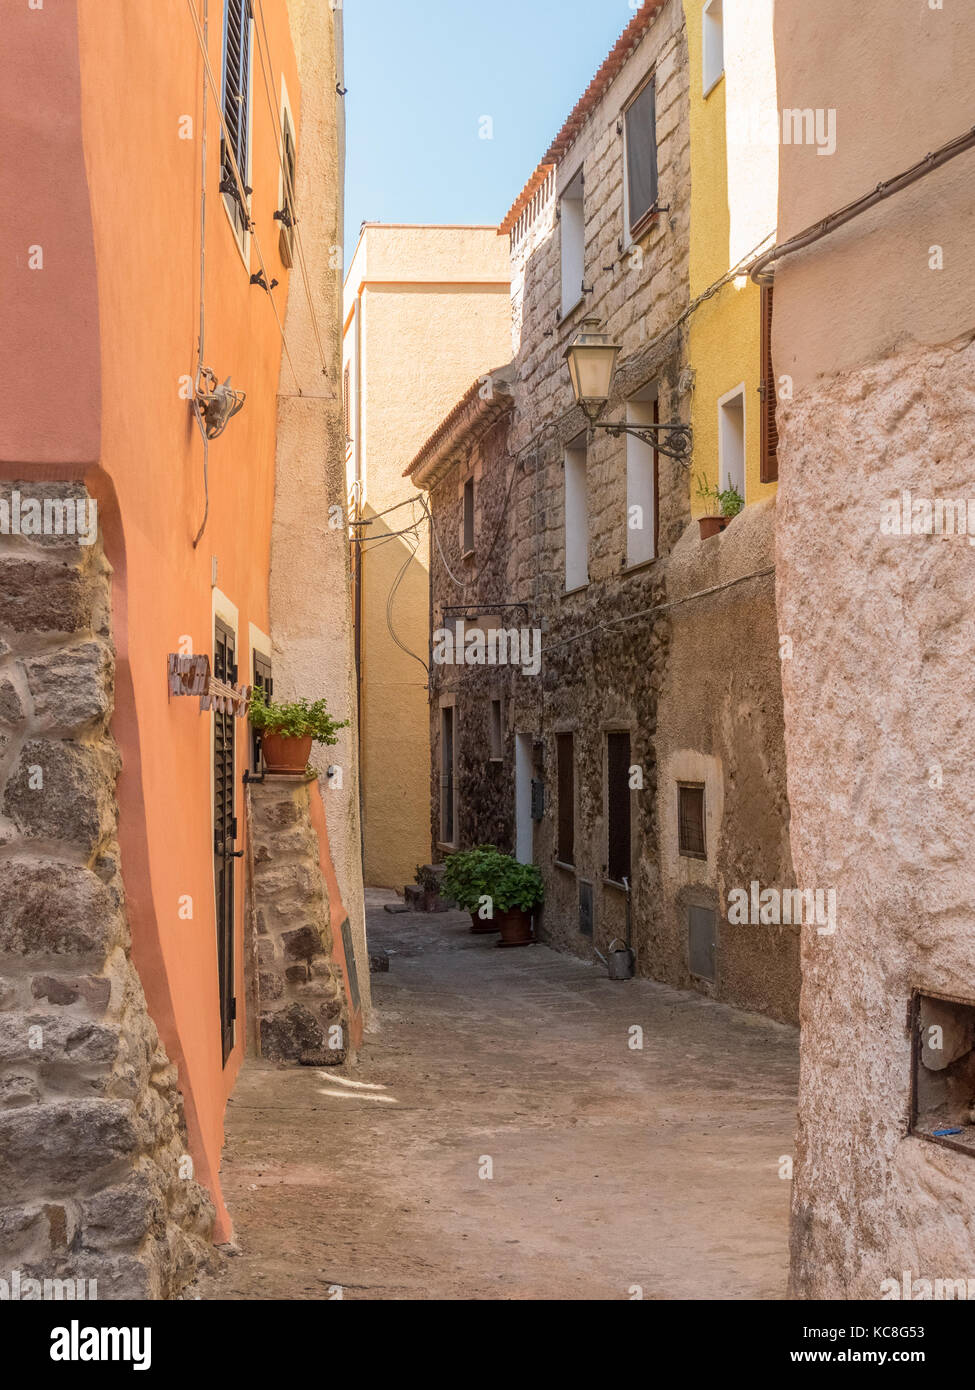 Castelsardo is a town and comune in Sardinia, Italy, located in the northwest of the island - Stock Image